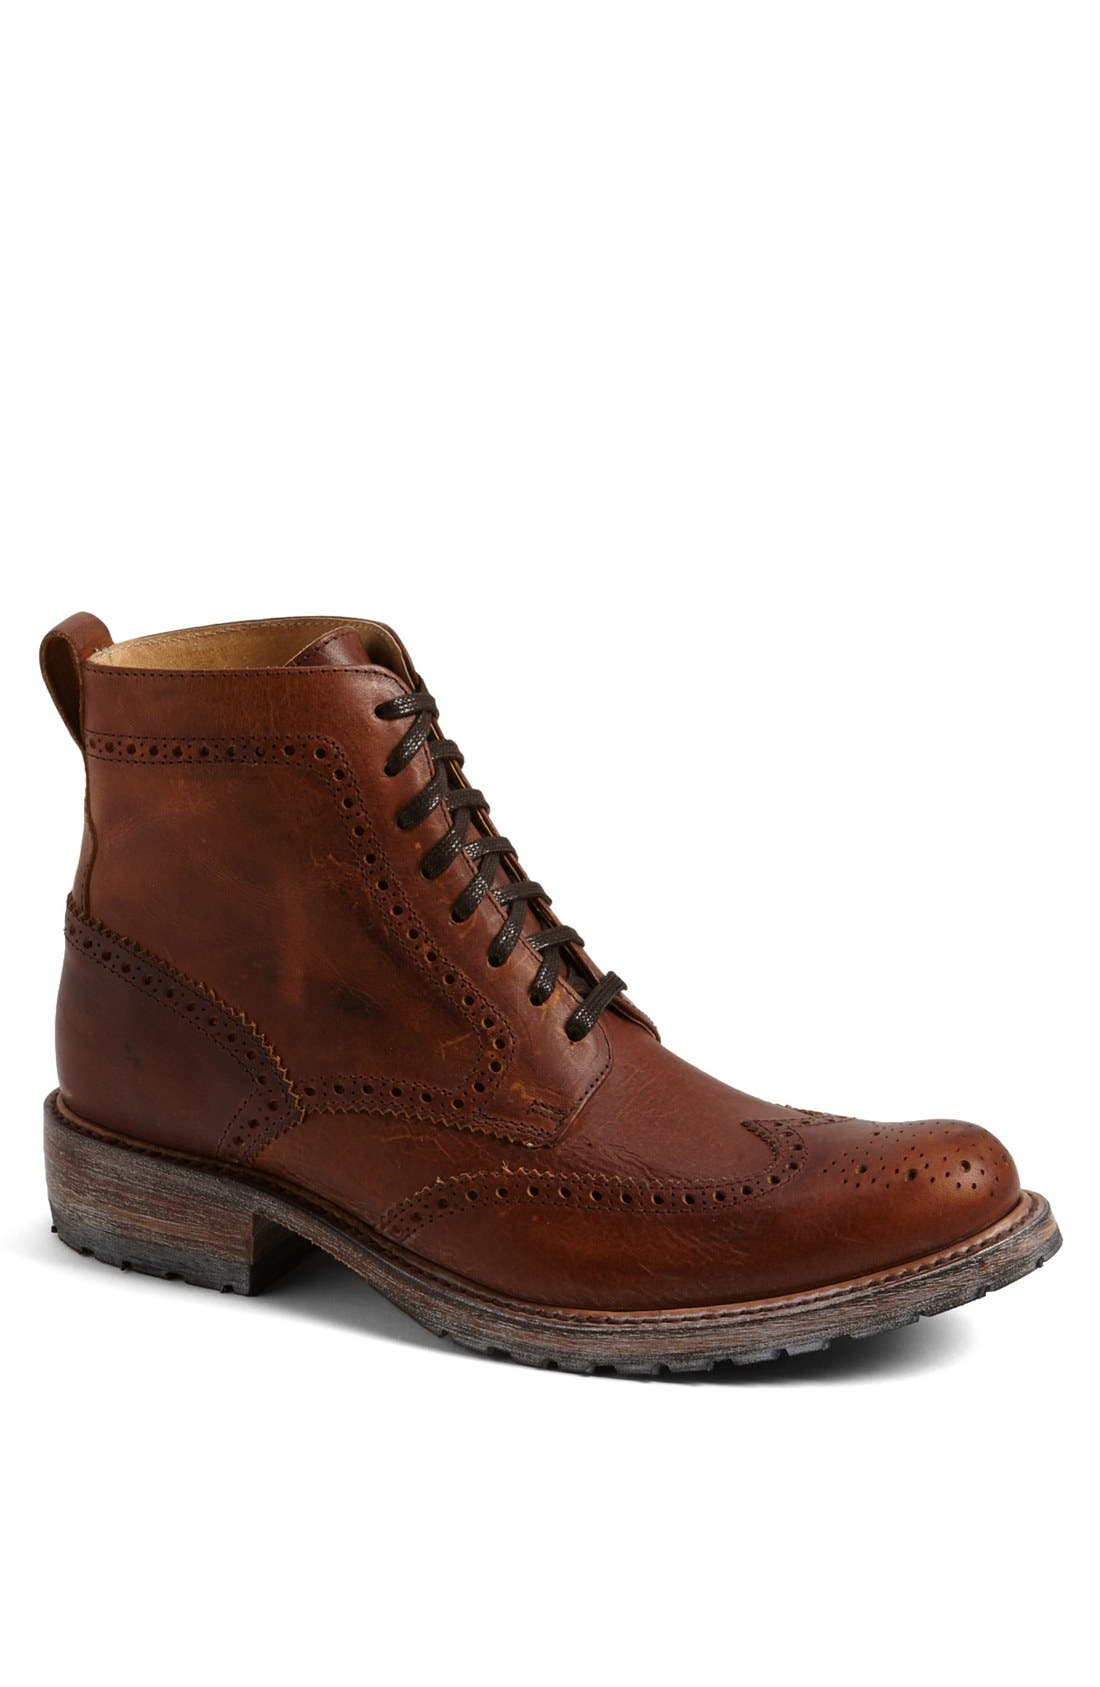 'Skye' Wingtip Boot,                         Main,                         color, Tan